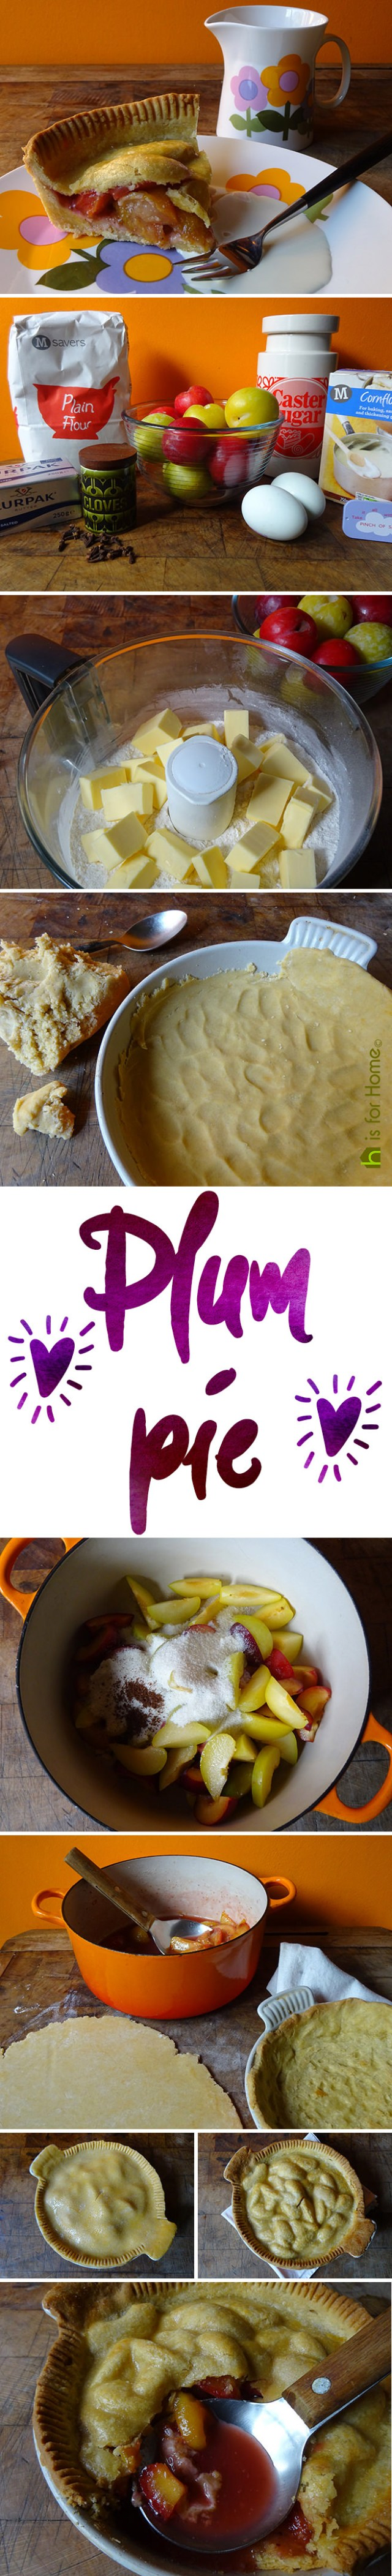 Home-made plum pie recipe | H is for Home #BritishPieWeek #pie #recipe #plums